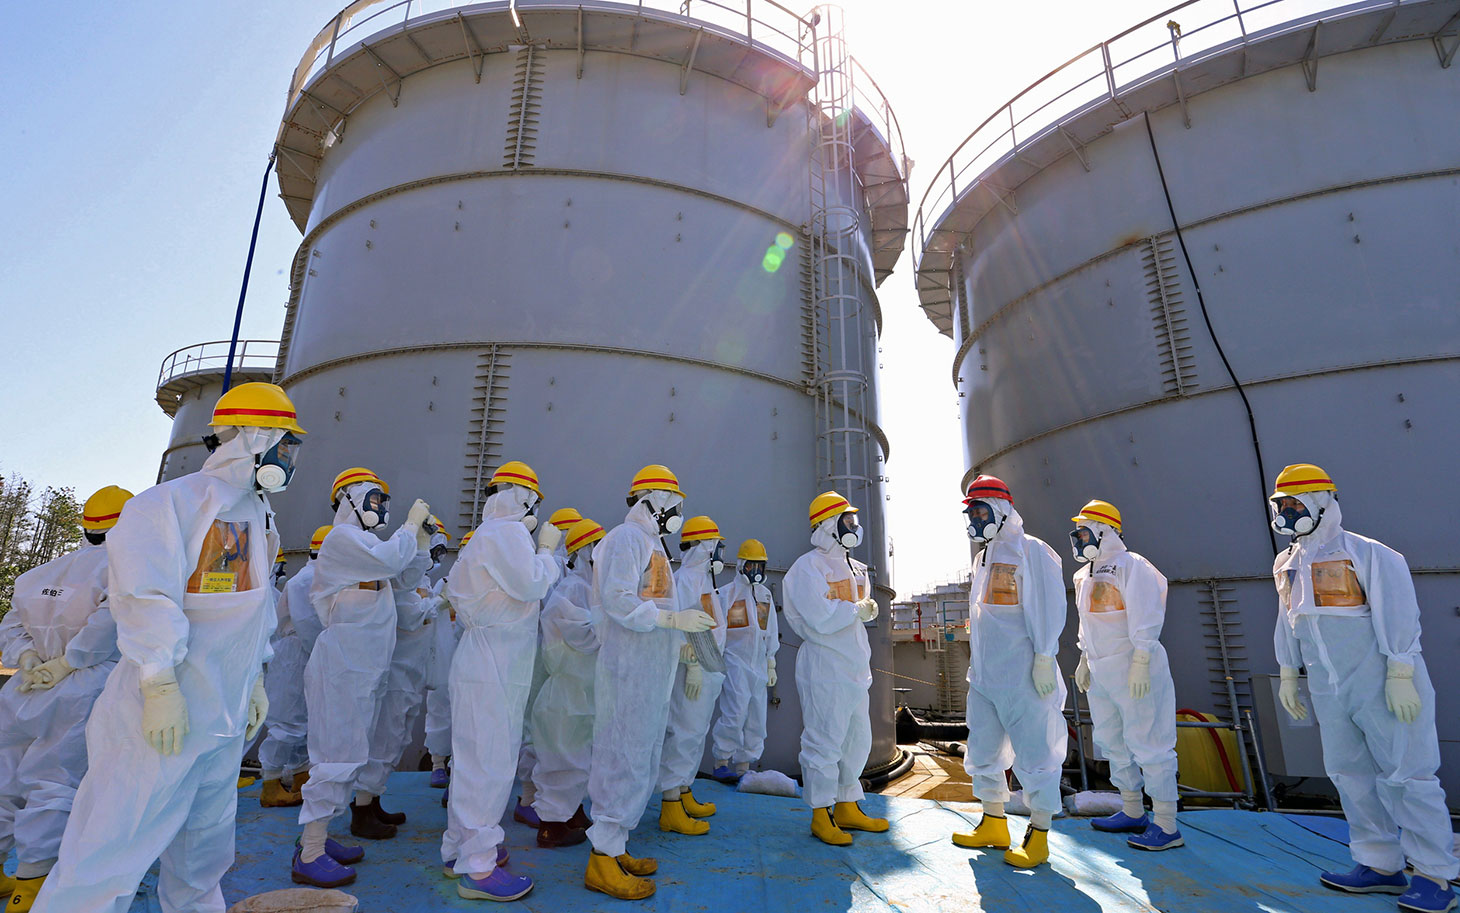 Japanese Prime Minister Shinzo Abe was briefed on the situation at the Fukushima Dai-ichi nuclear power plant as he toured the facility back on Sept. 19, 2013.  chief Akira Ono (4th L) in front of two tanks (back) which are being dismantled after leaking contaminated water, during his tour to the tsunami-crippled plant in Okuma, Fukushima Prefecture, northeastern Japan on September 19, 2013. Abe told Fukushima's operator to fix radioactive water leaks as he toured the crippled nuclear plant on September 19, less than two weeks after assuring the world the situation was under control. AFP PHOTO / Japan Pool  JAPAN OUT        (Photo credit should read JAPAN POOL/AFP/Getty Images)